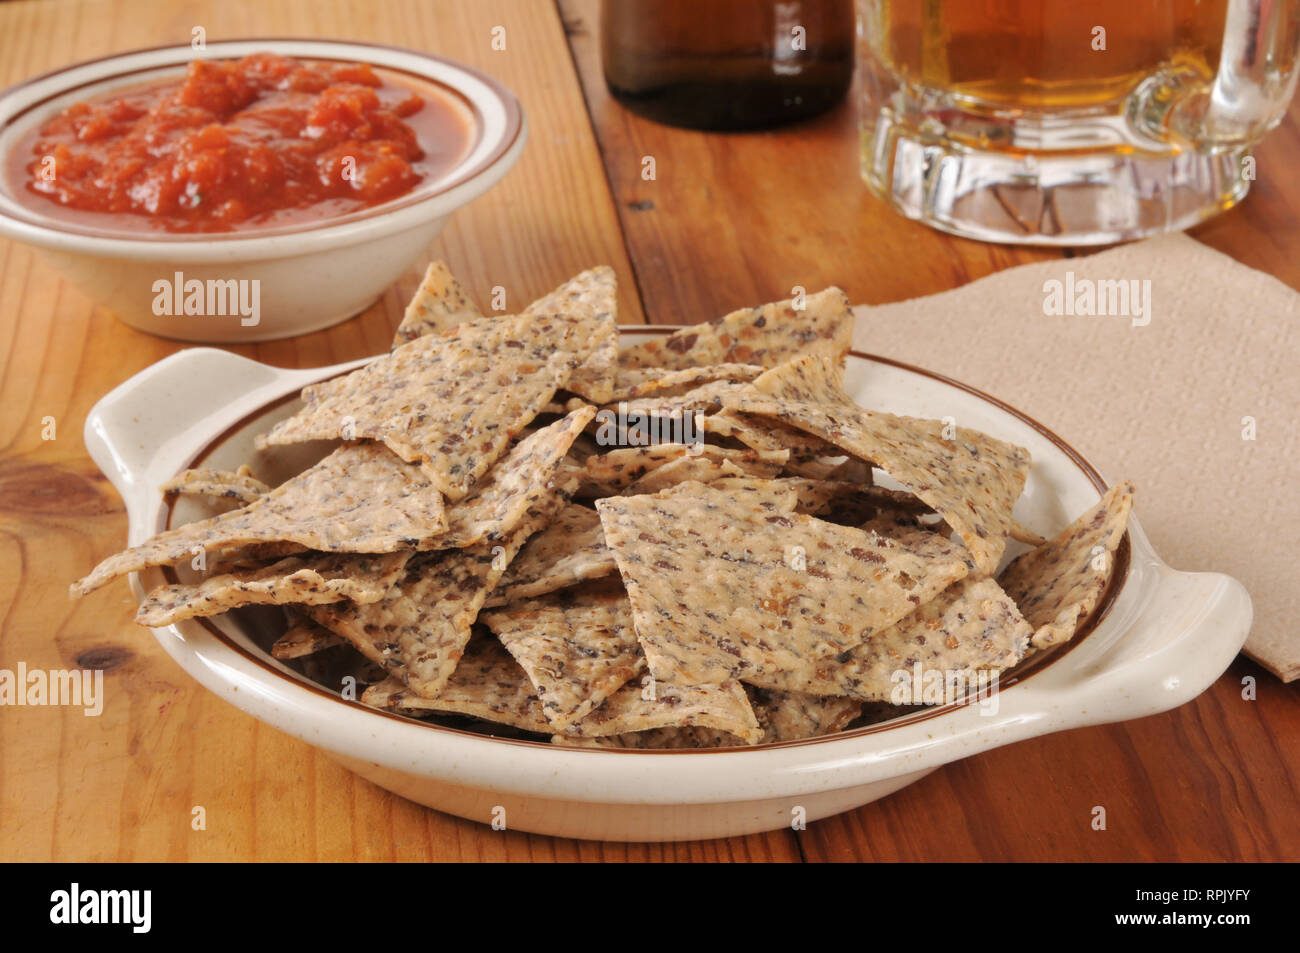 A Bowl Of Rice And Bean Tortilla Chips With Salsa And Beer Stock